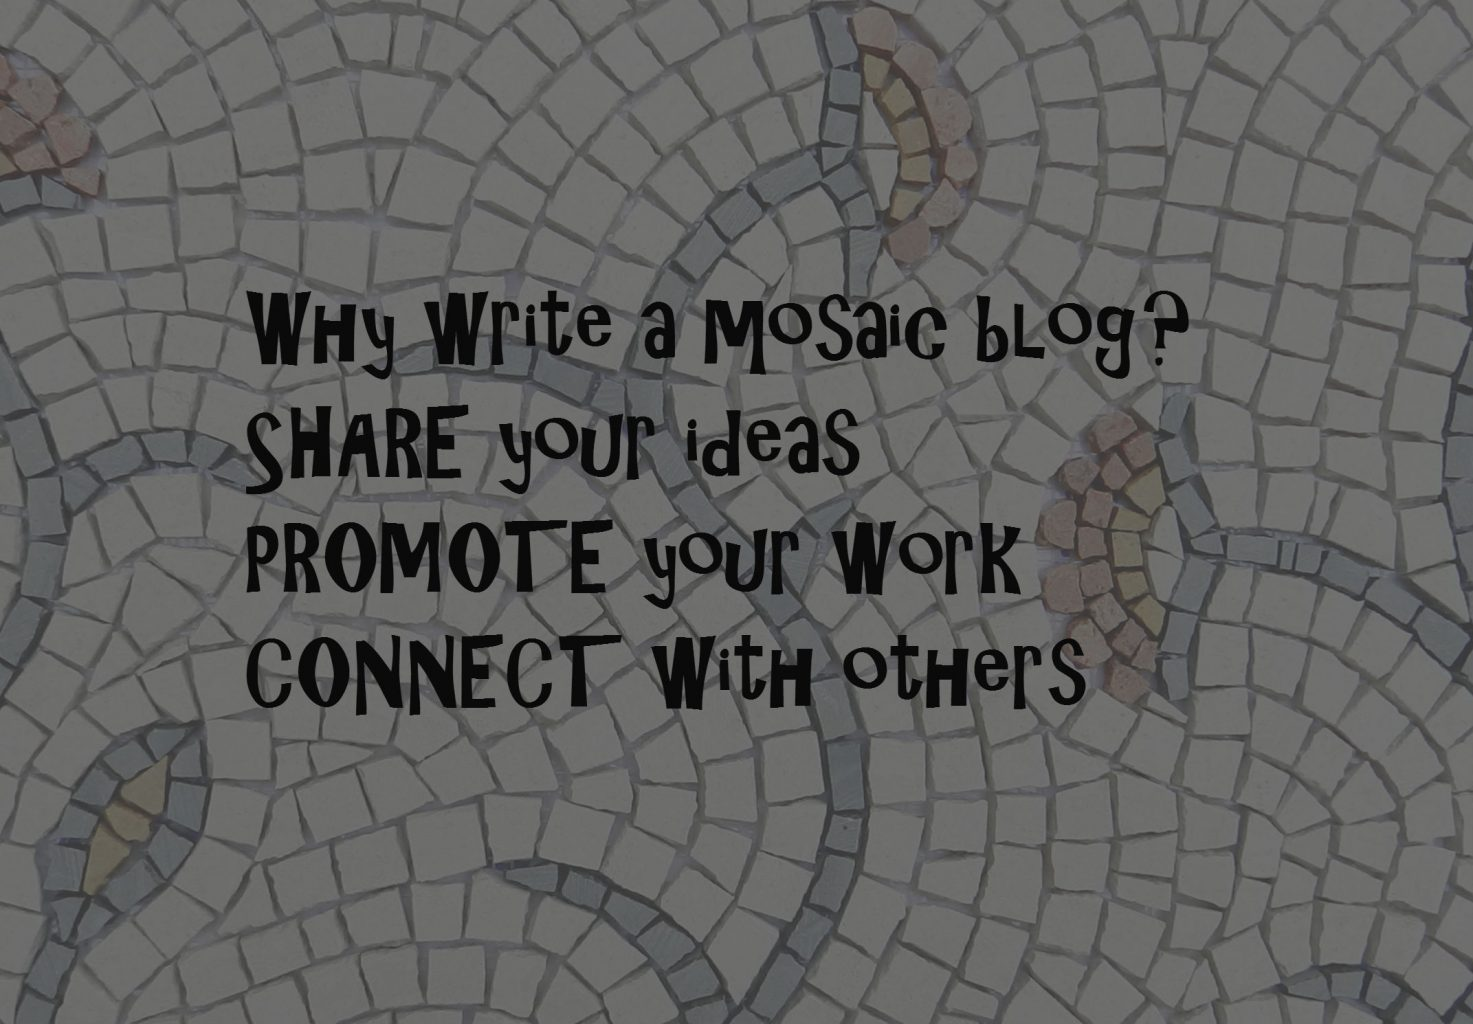 The Hows and Whys of Writing a Mosaic Blog